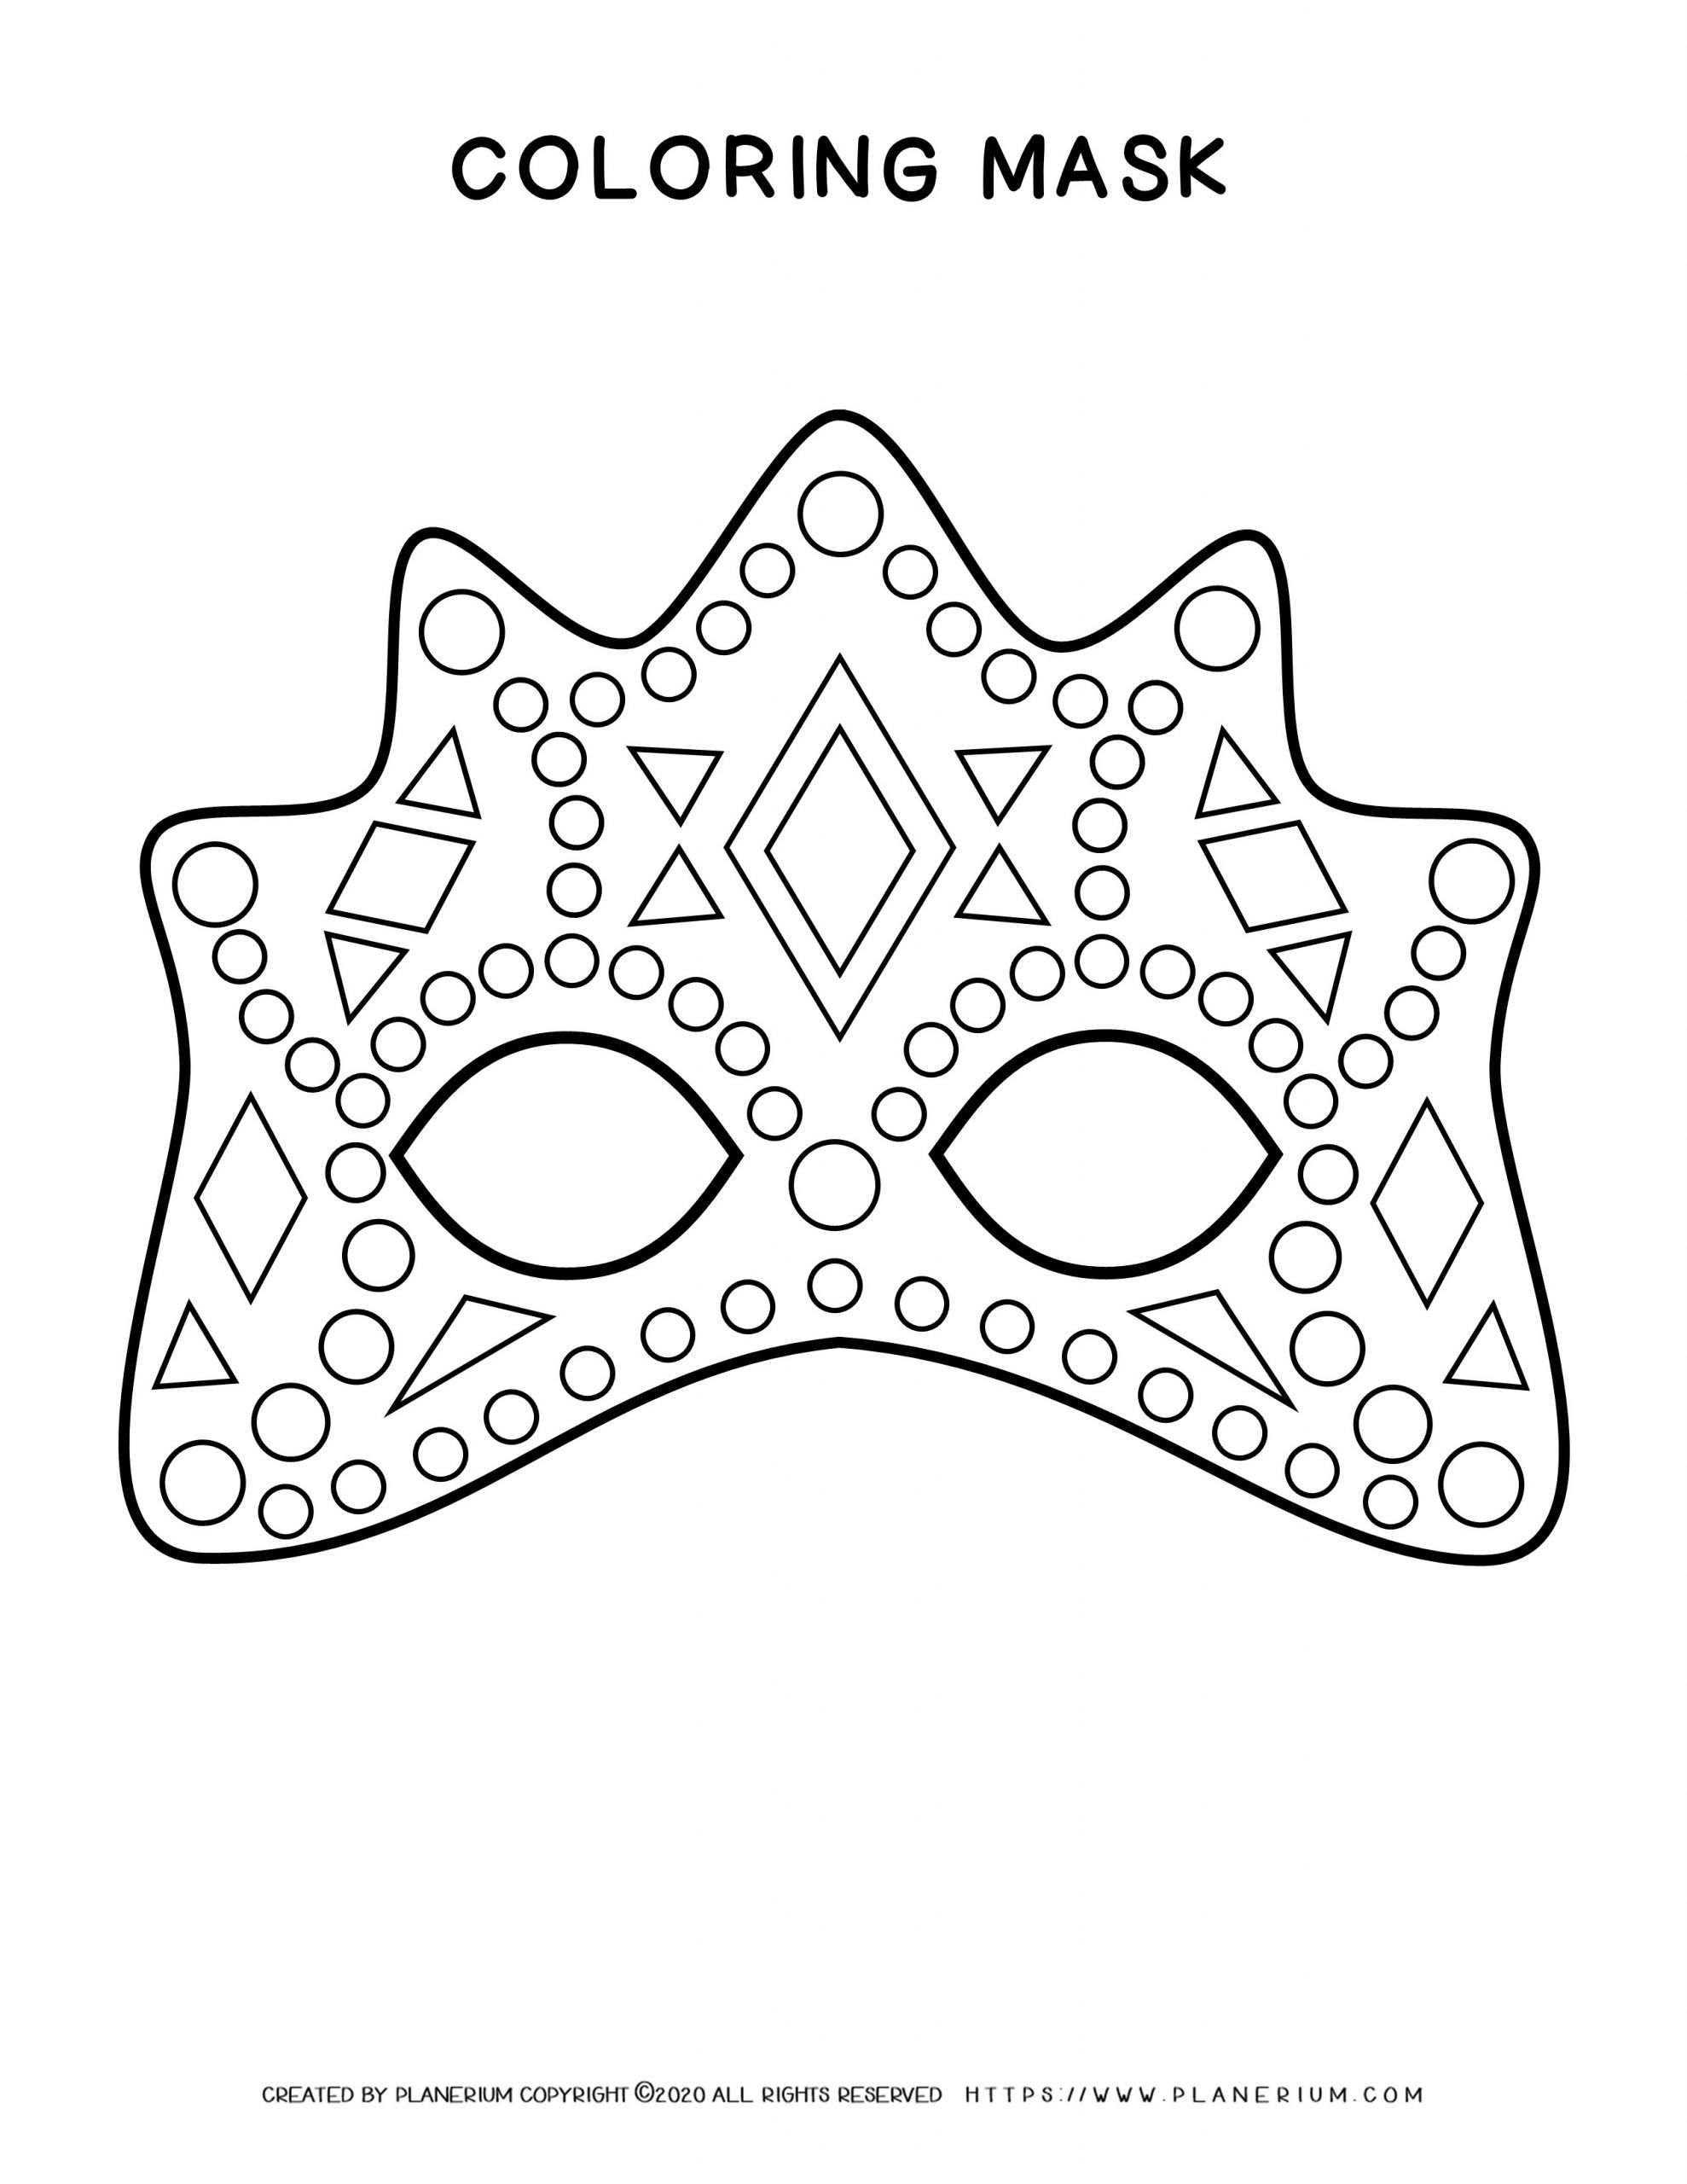 Carnival - Coloring page - Eye mask high decor | Planerium